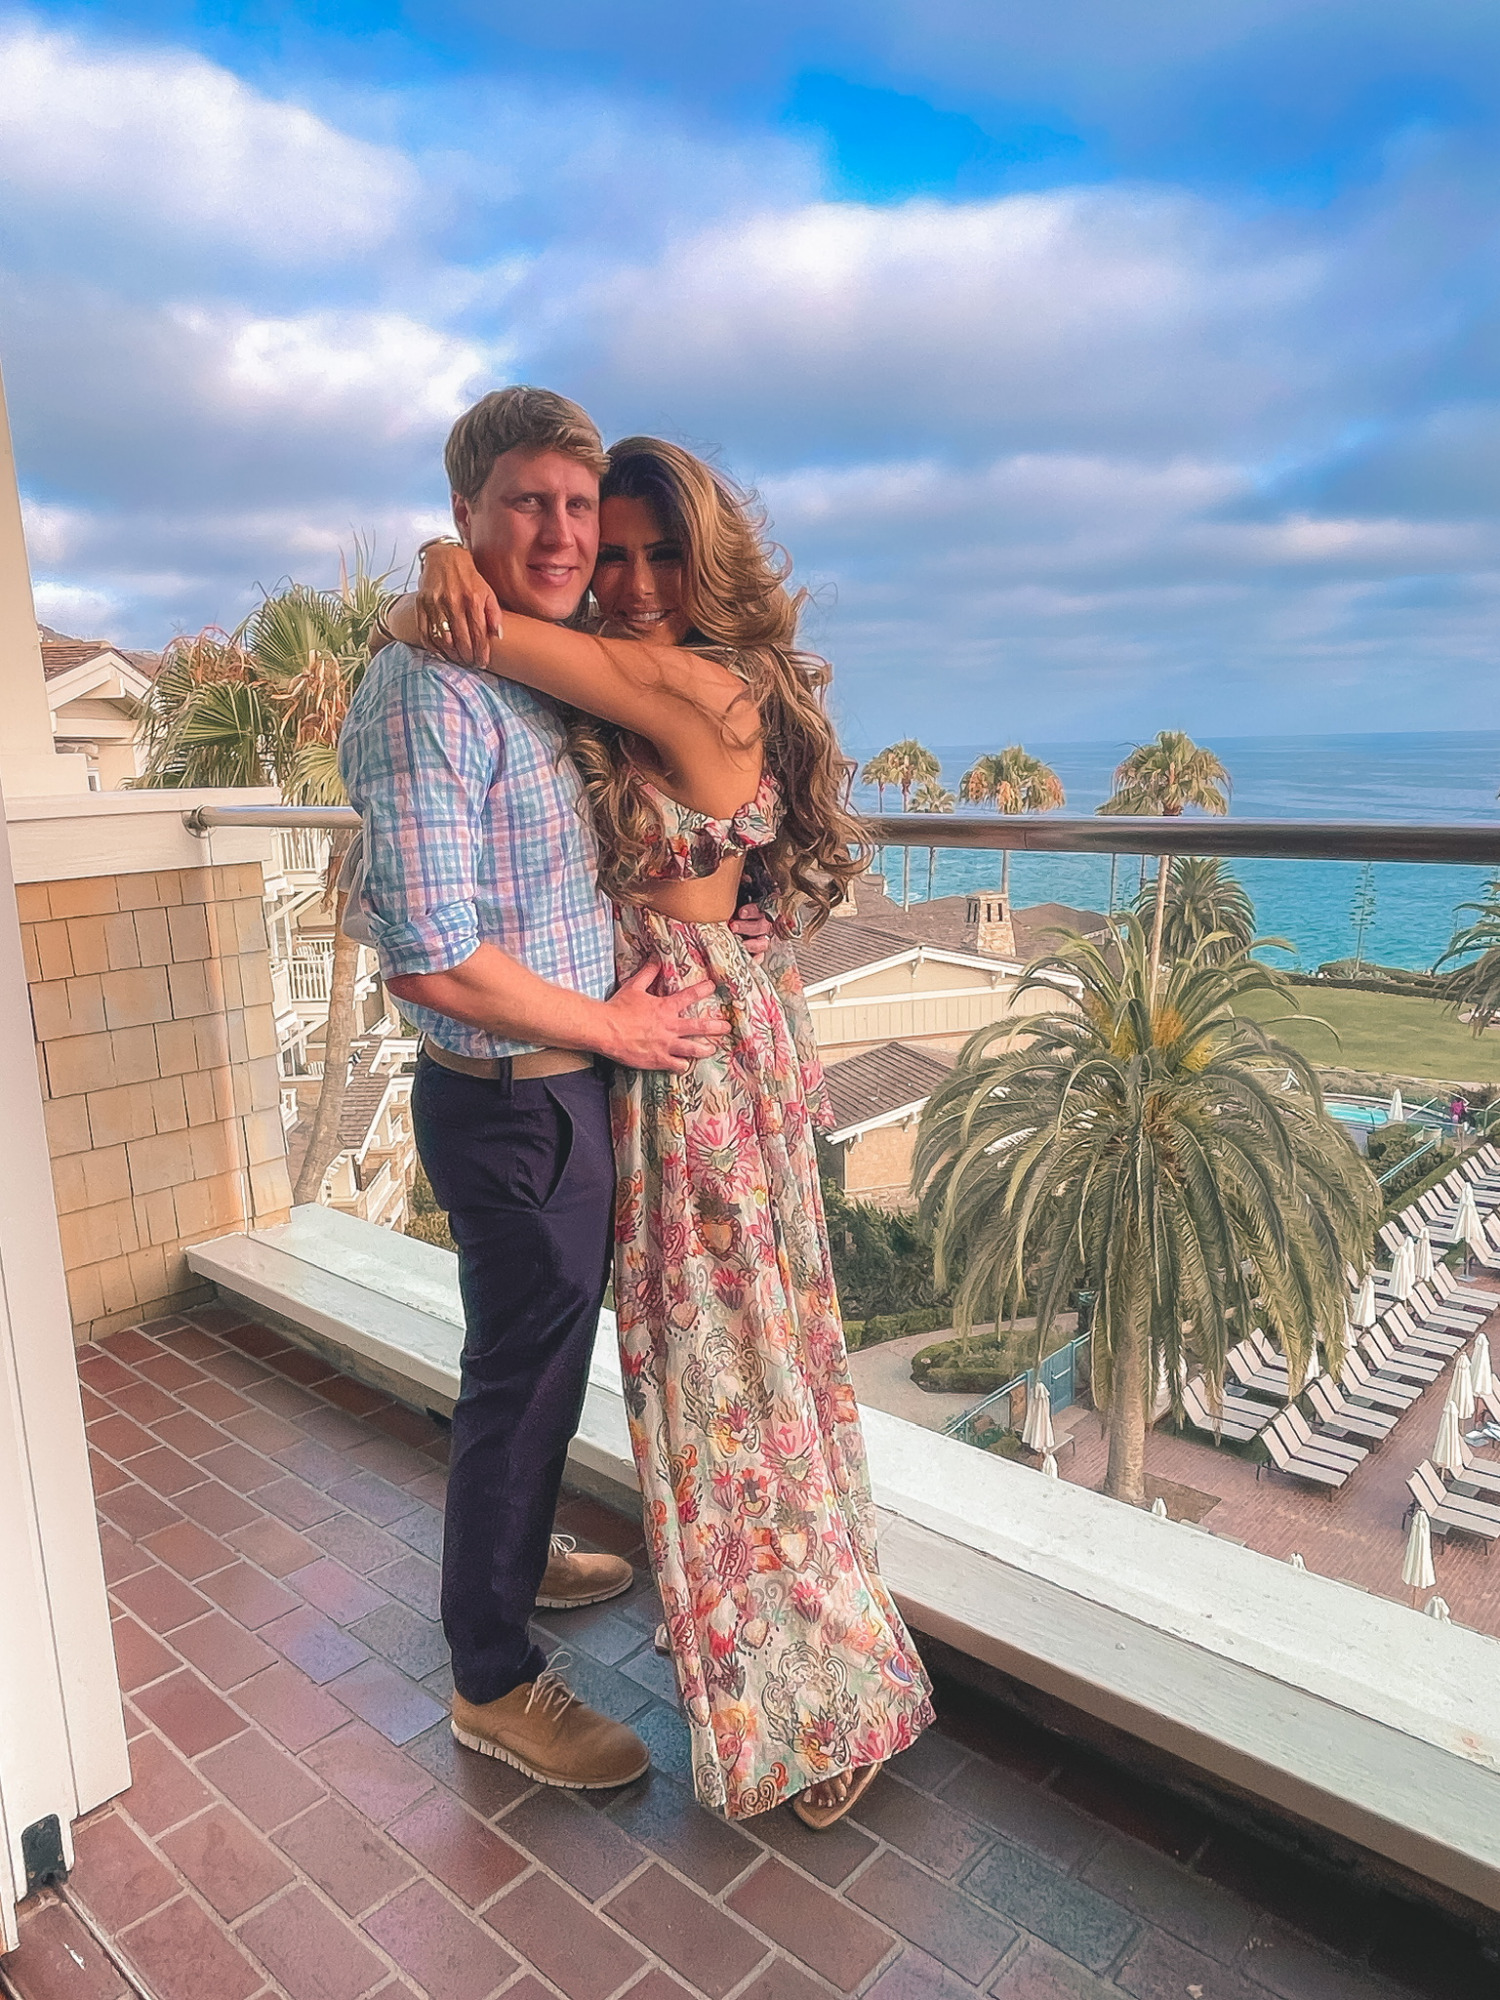 Emily and John gemma, Zimmermann dress, vacation outfit ideas   Instagram Recap by popular US life and style blog, The Sweetest Thing: image of Emily Gemma wearing a tropical print Zimmerman dress and standing with her arms wrapped around her husband while standing on a deck with an ocean view.